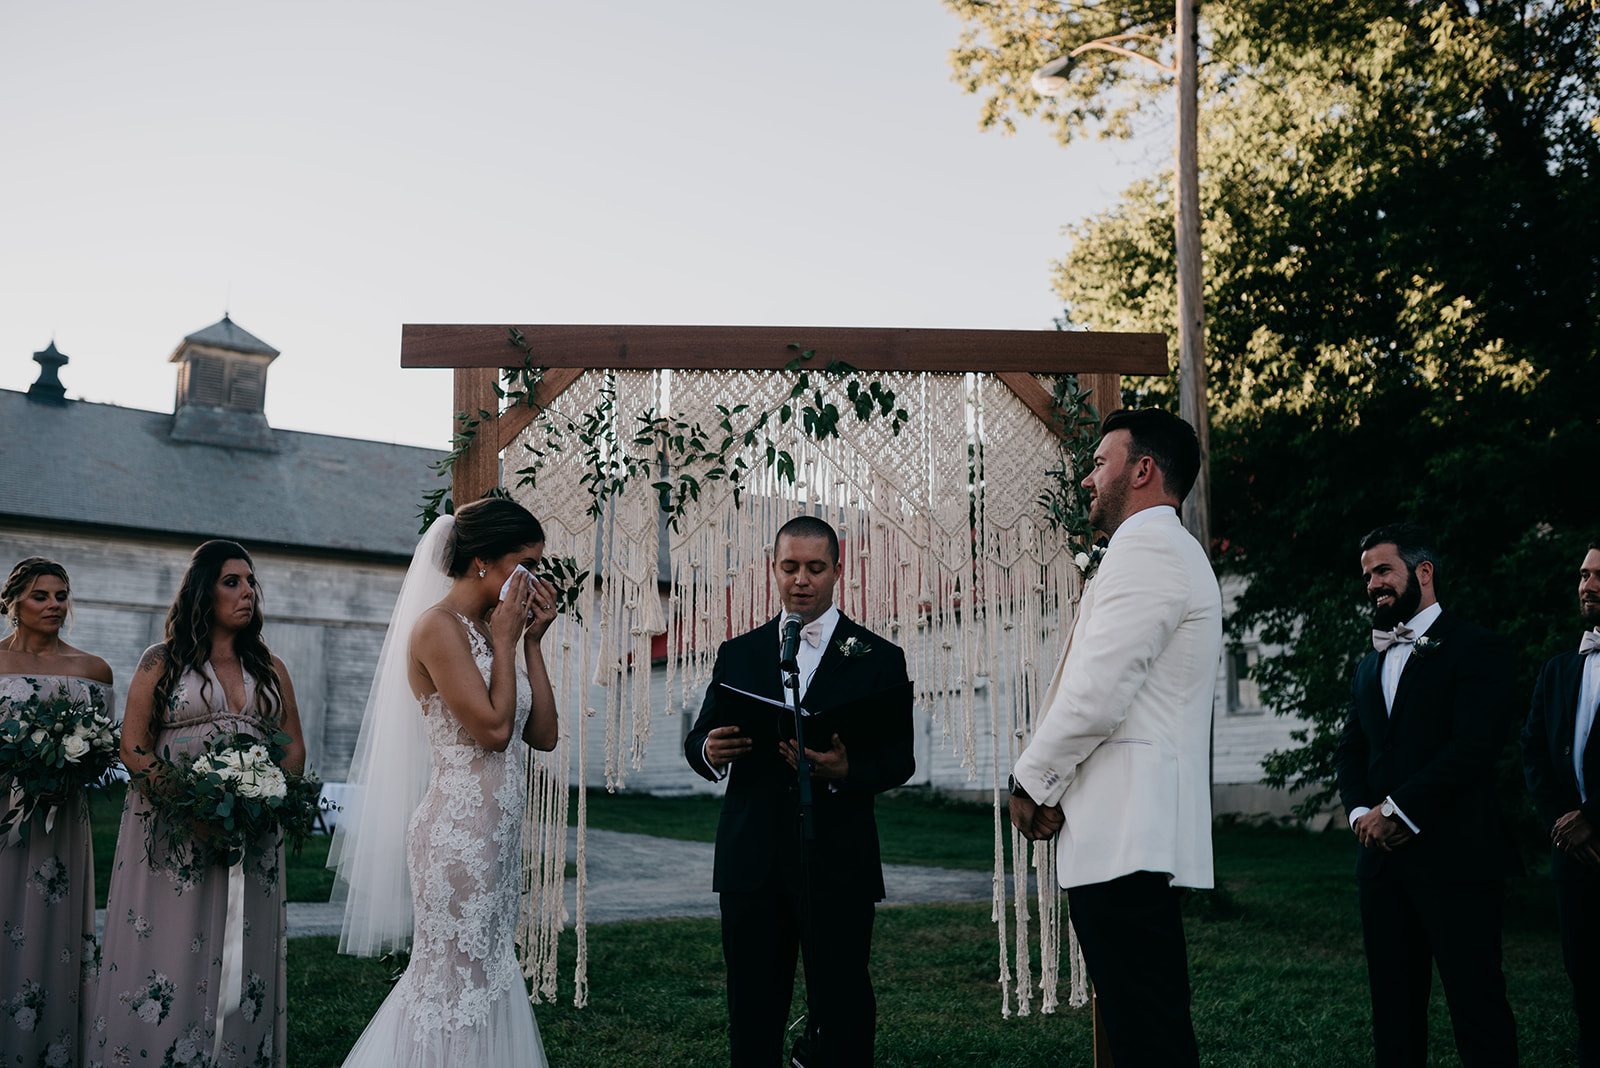 shaker_heritage_barn_wedding_020.jpg